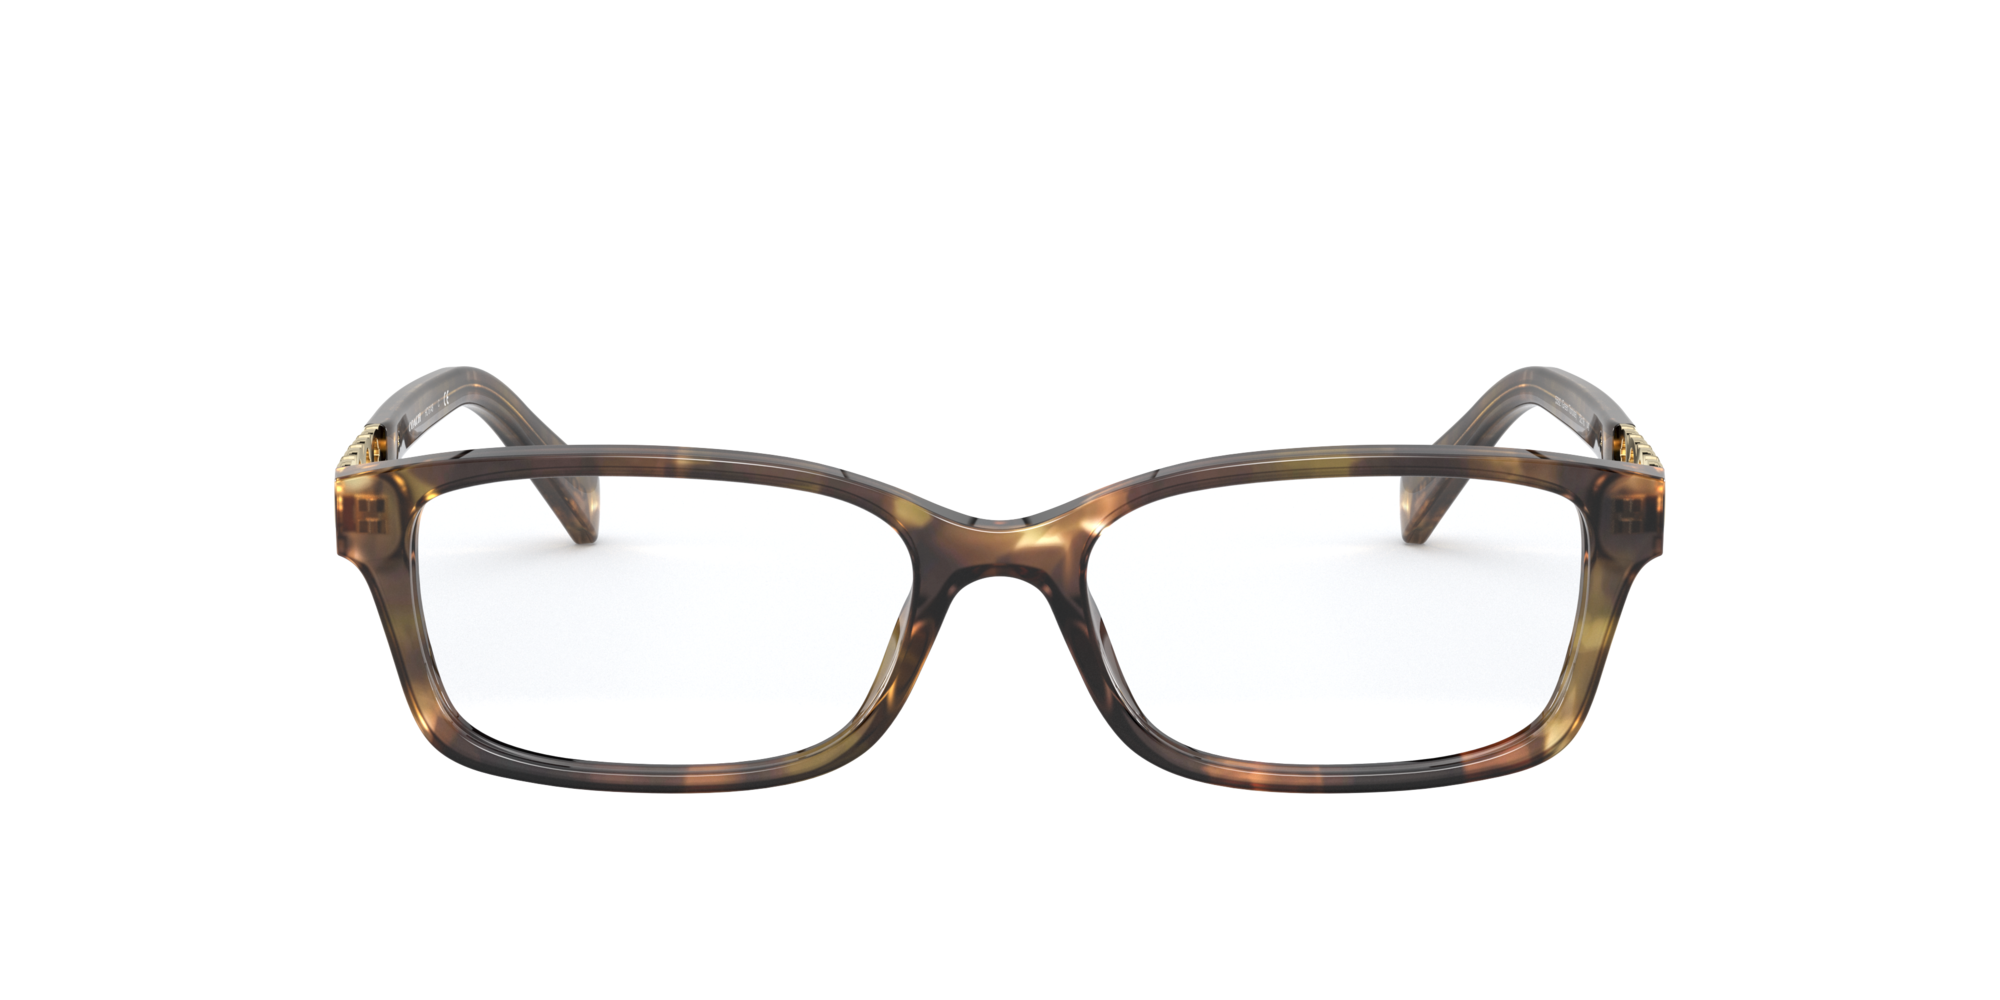 Image for HC6148 from LensCrafters | Glasses, Prescription Glasses Online, Eyewear